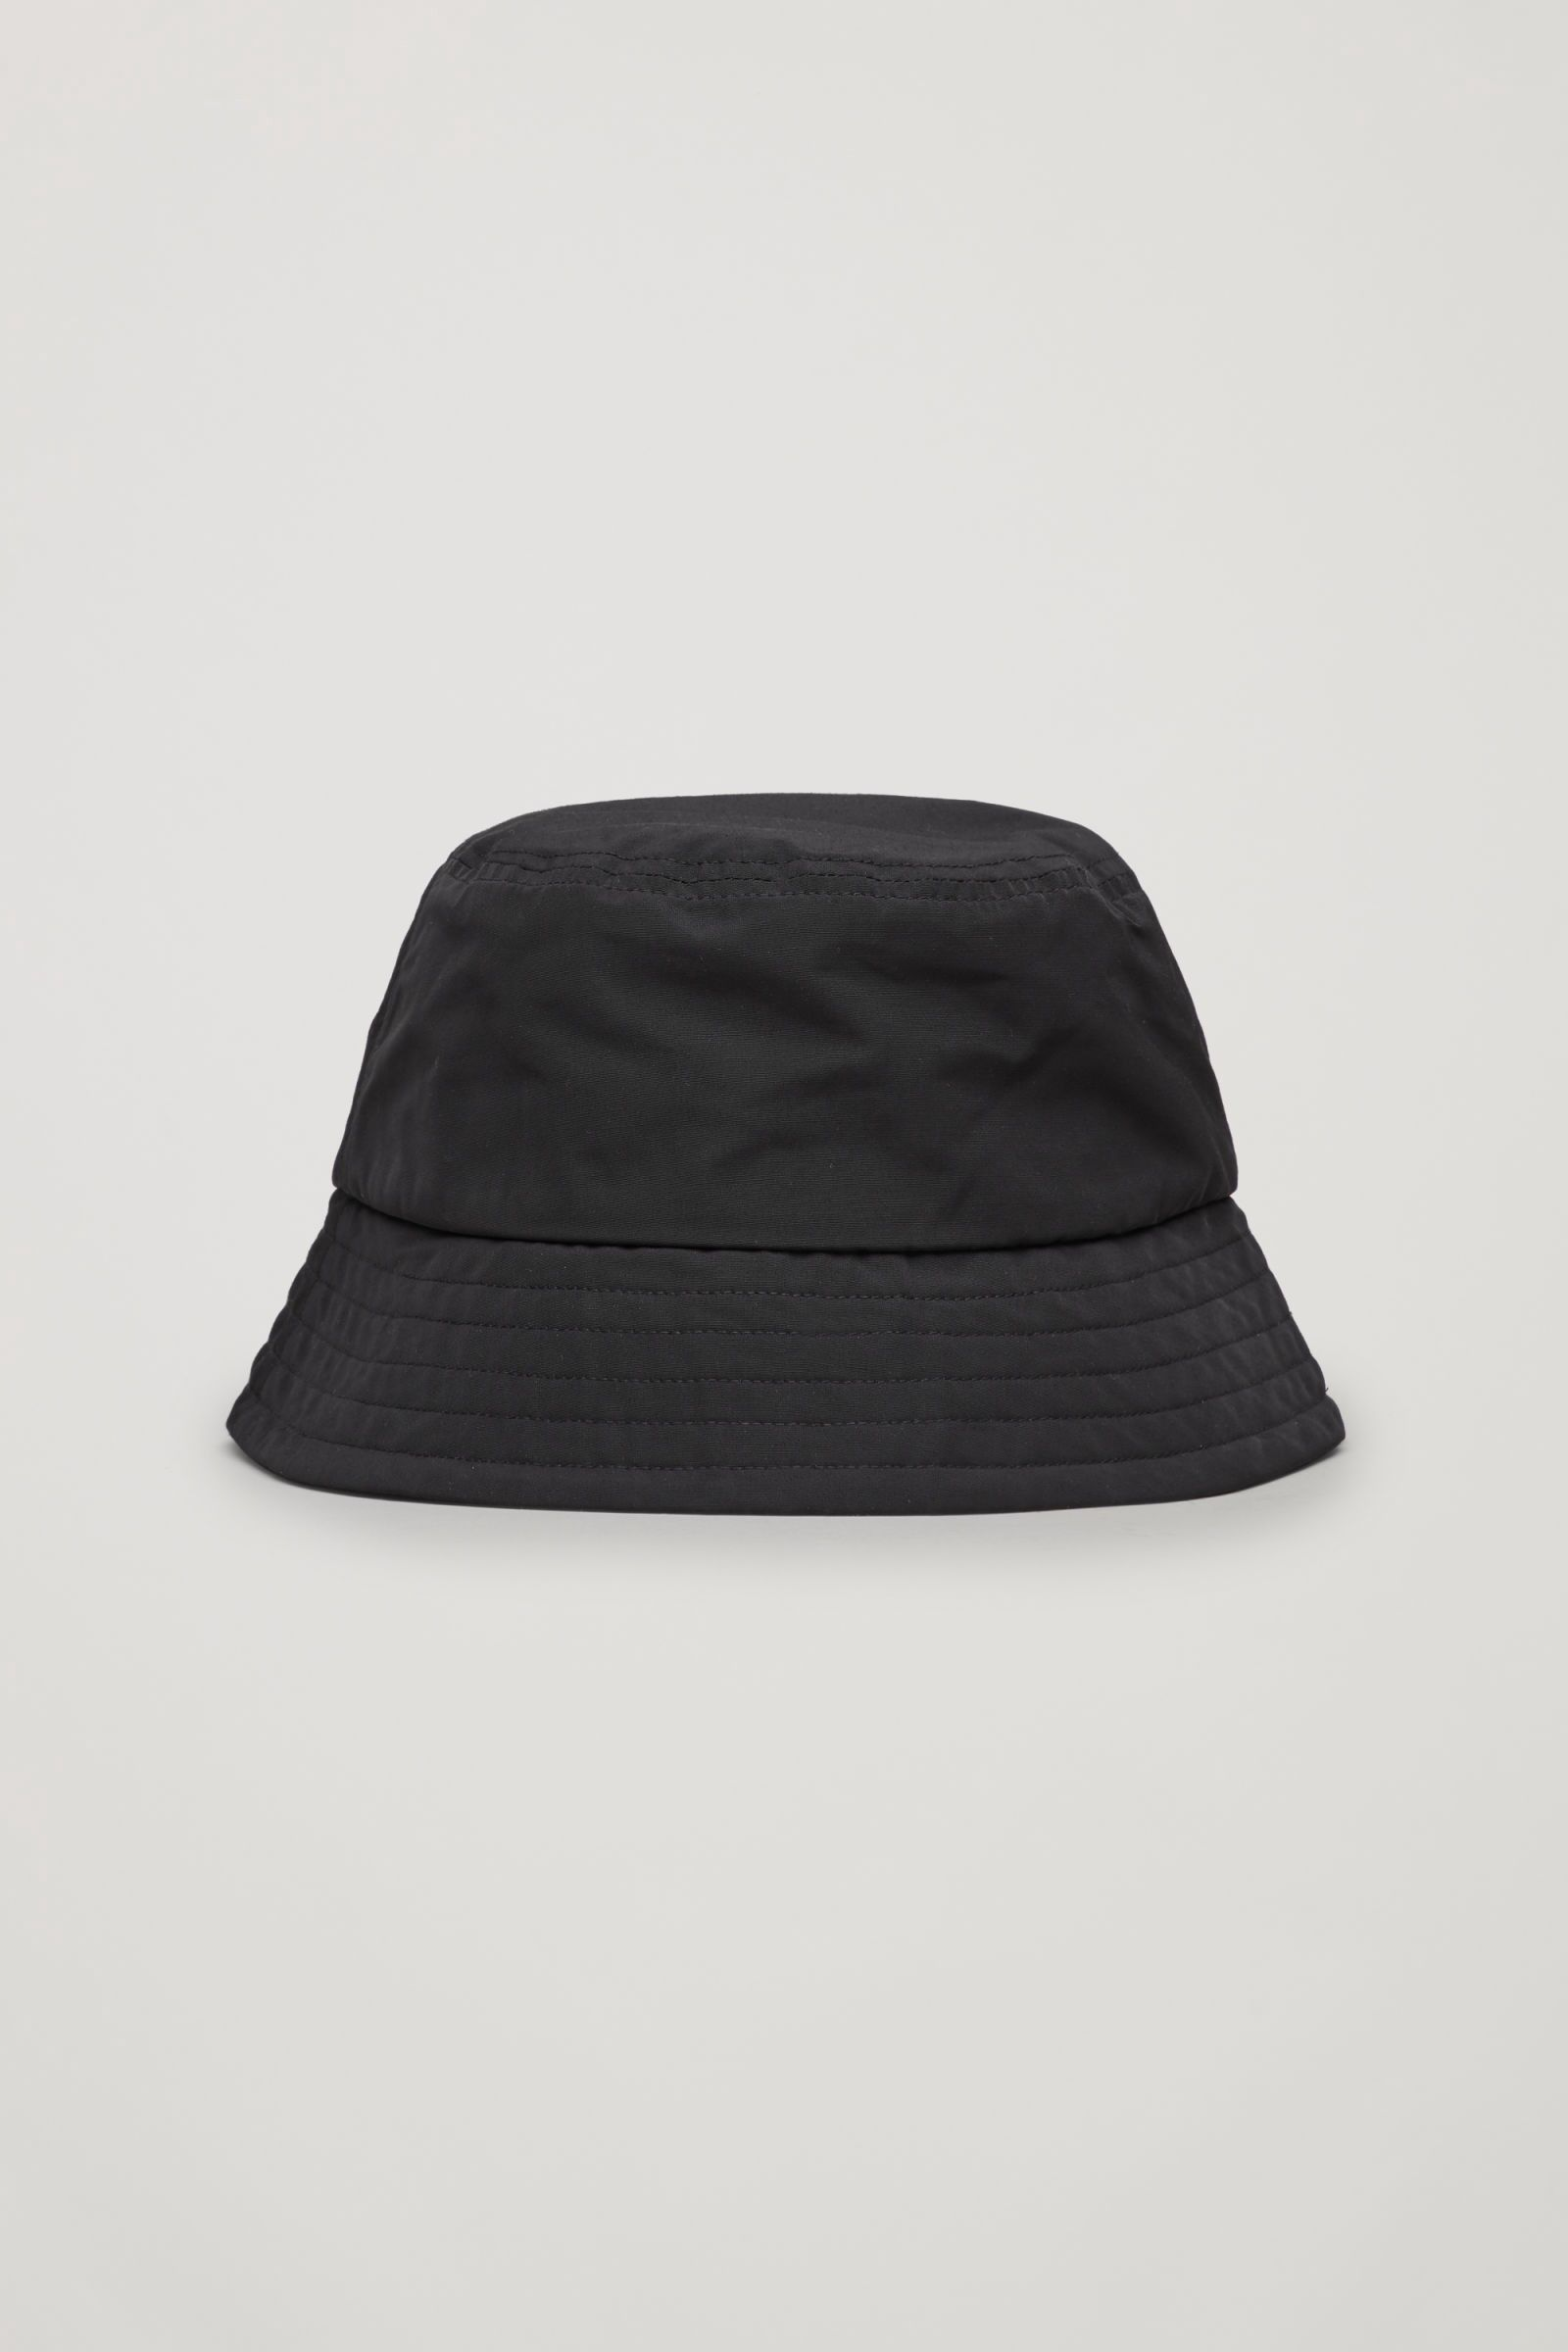 8f72fa227f9 Cos Bucket Hat - Black L Xl